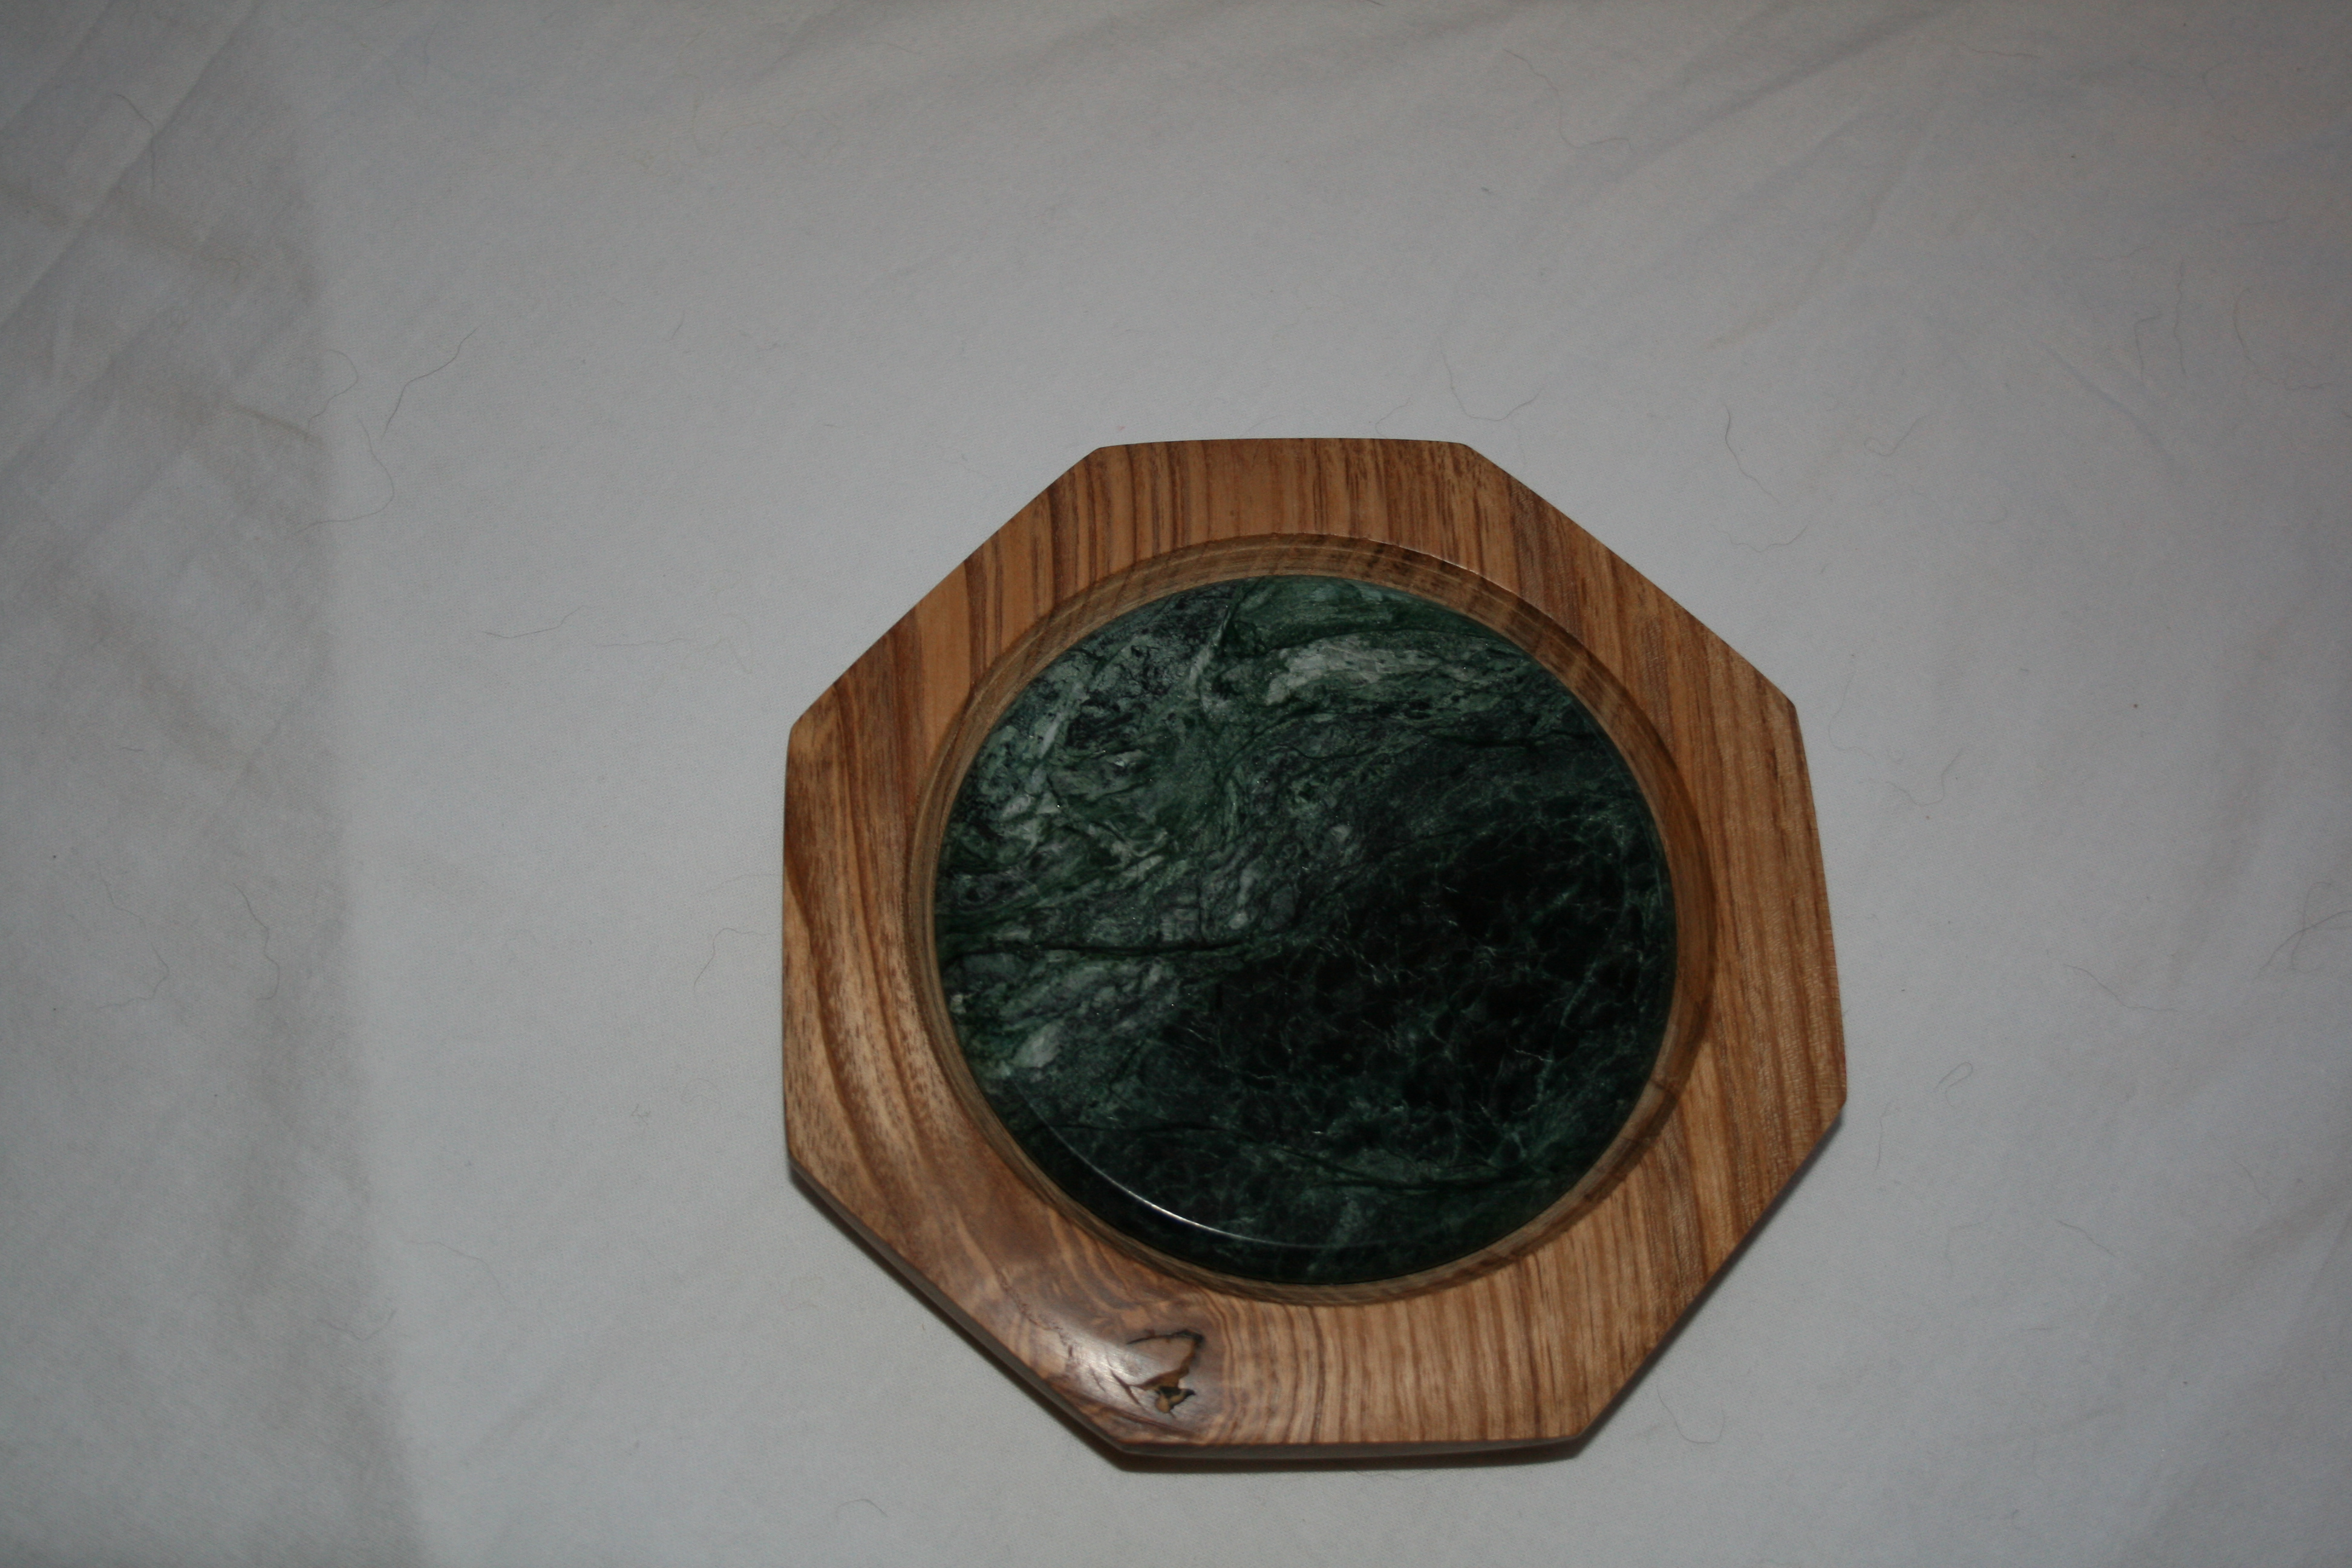 eight sided platter with round green marble tile